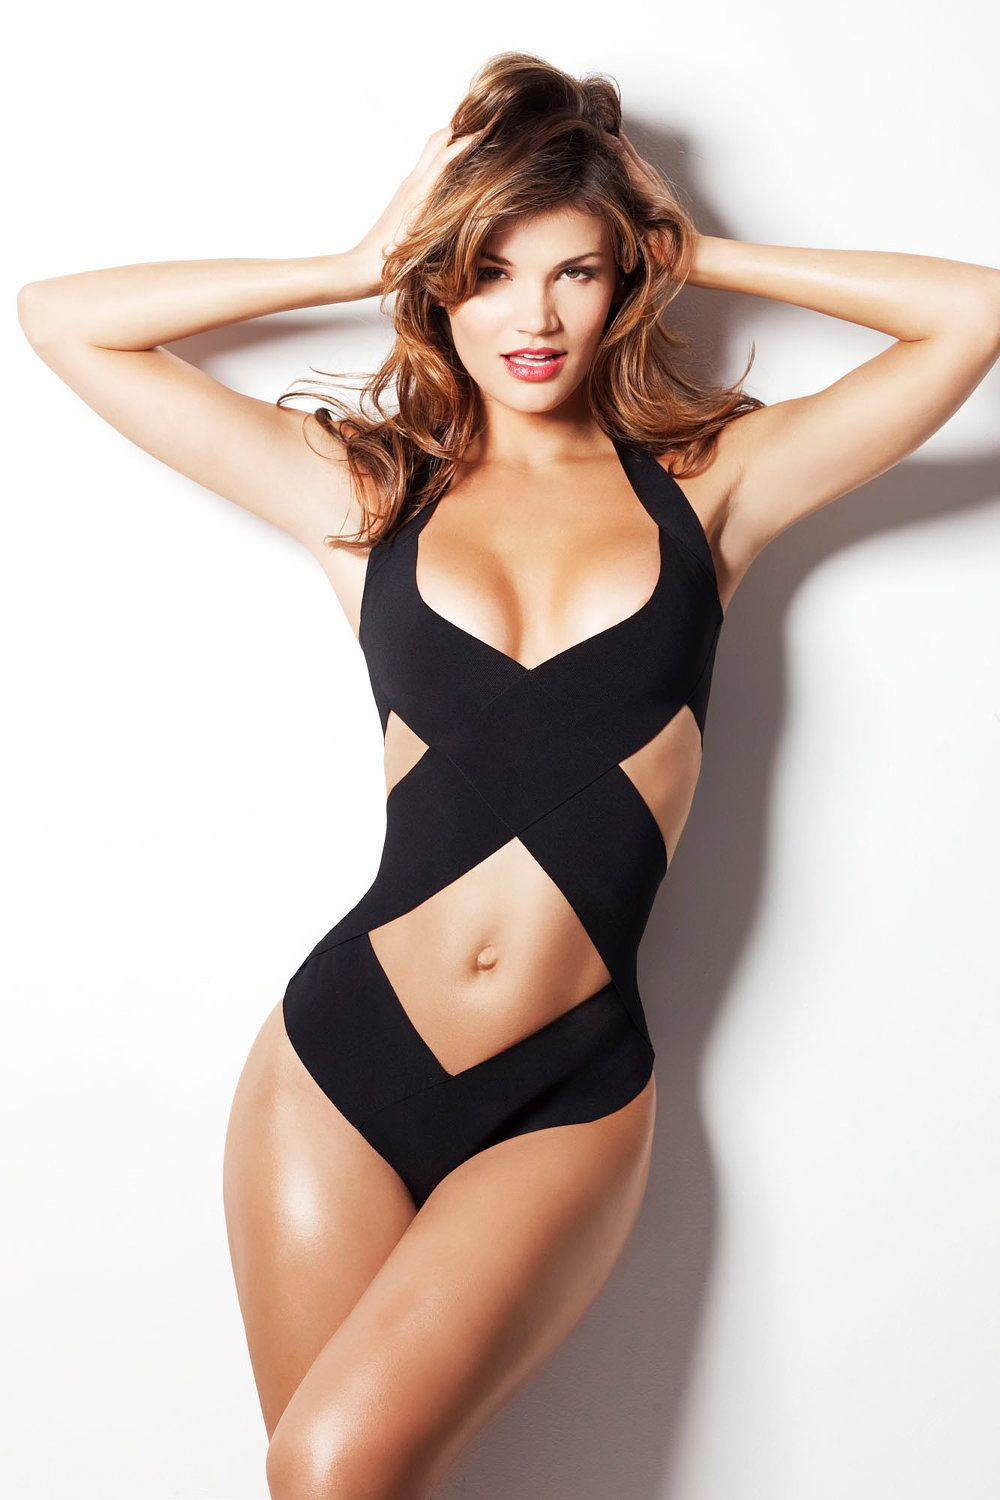 d6d008455e Bandage swimsuit  bathing suit as seen in GQ